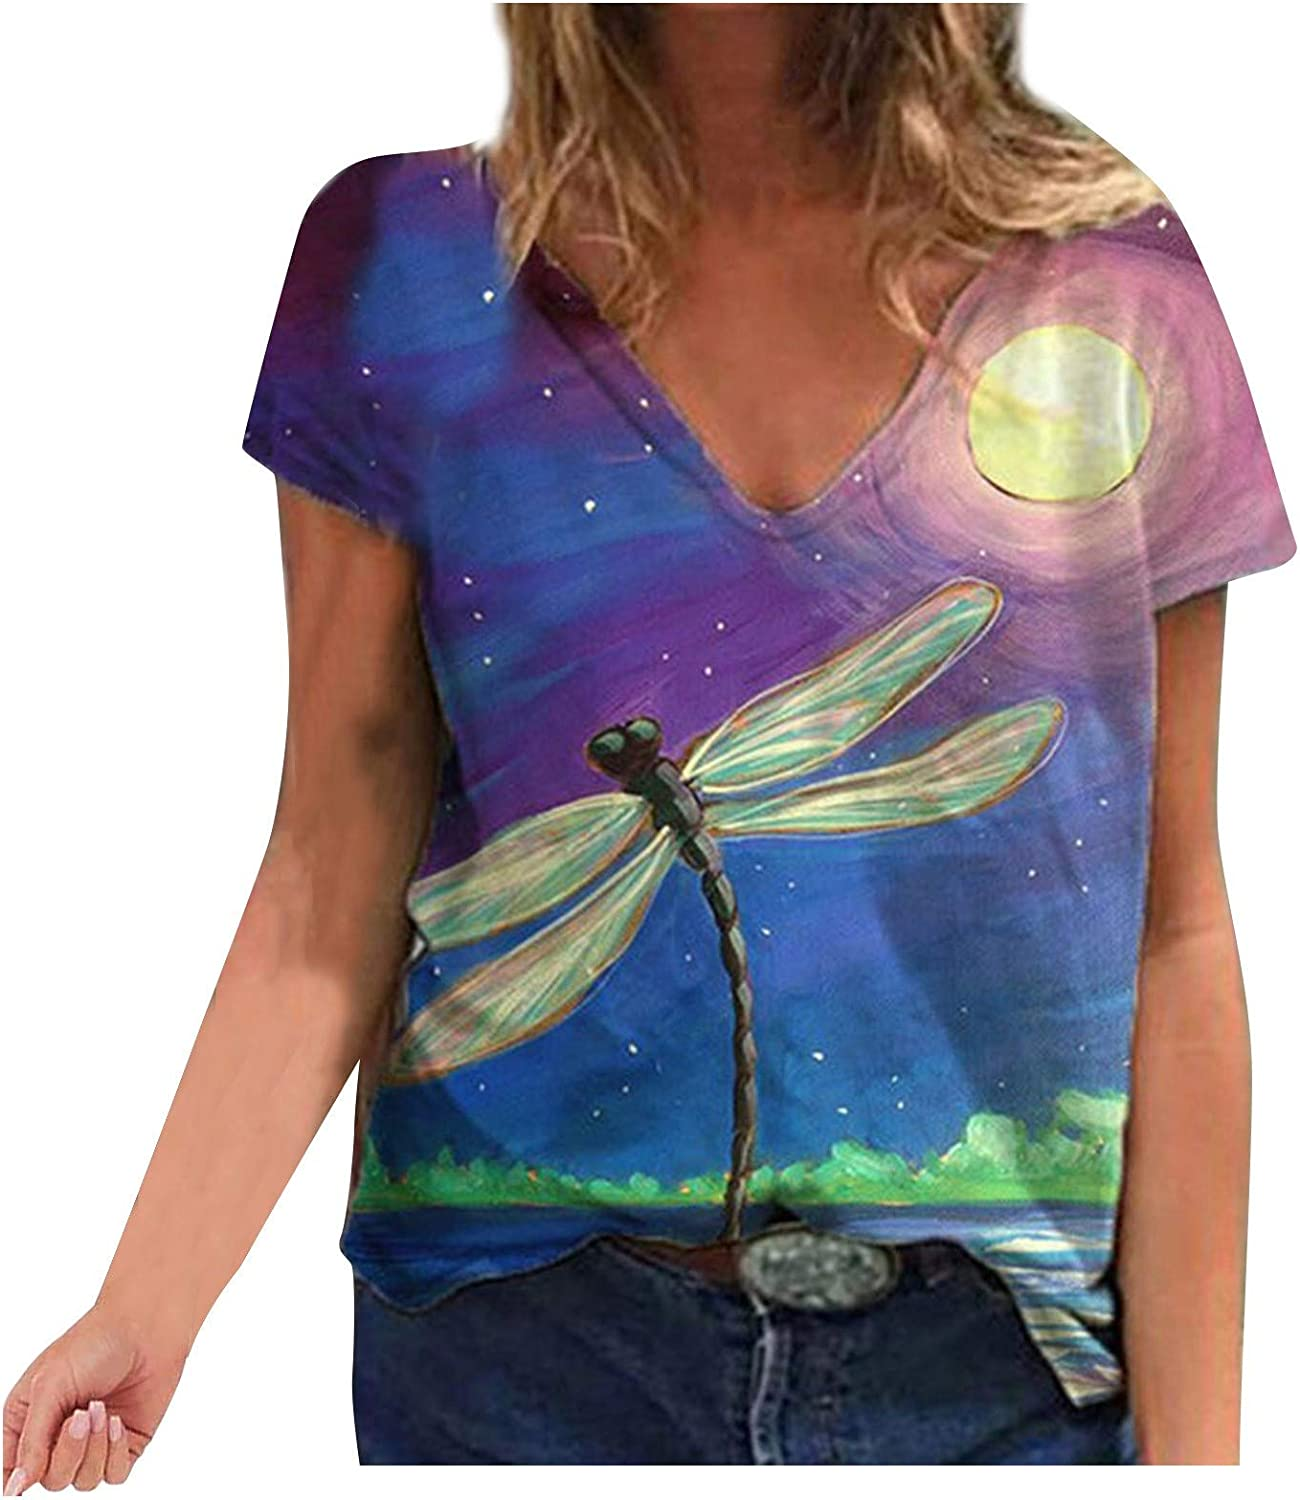 Free shipping anywhere in the nation Portazai Short Sleeve Tops for V-Neck Austin Mall T-Shirts Womens Fas Women